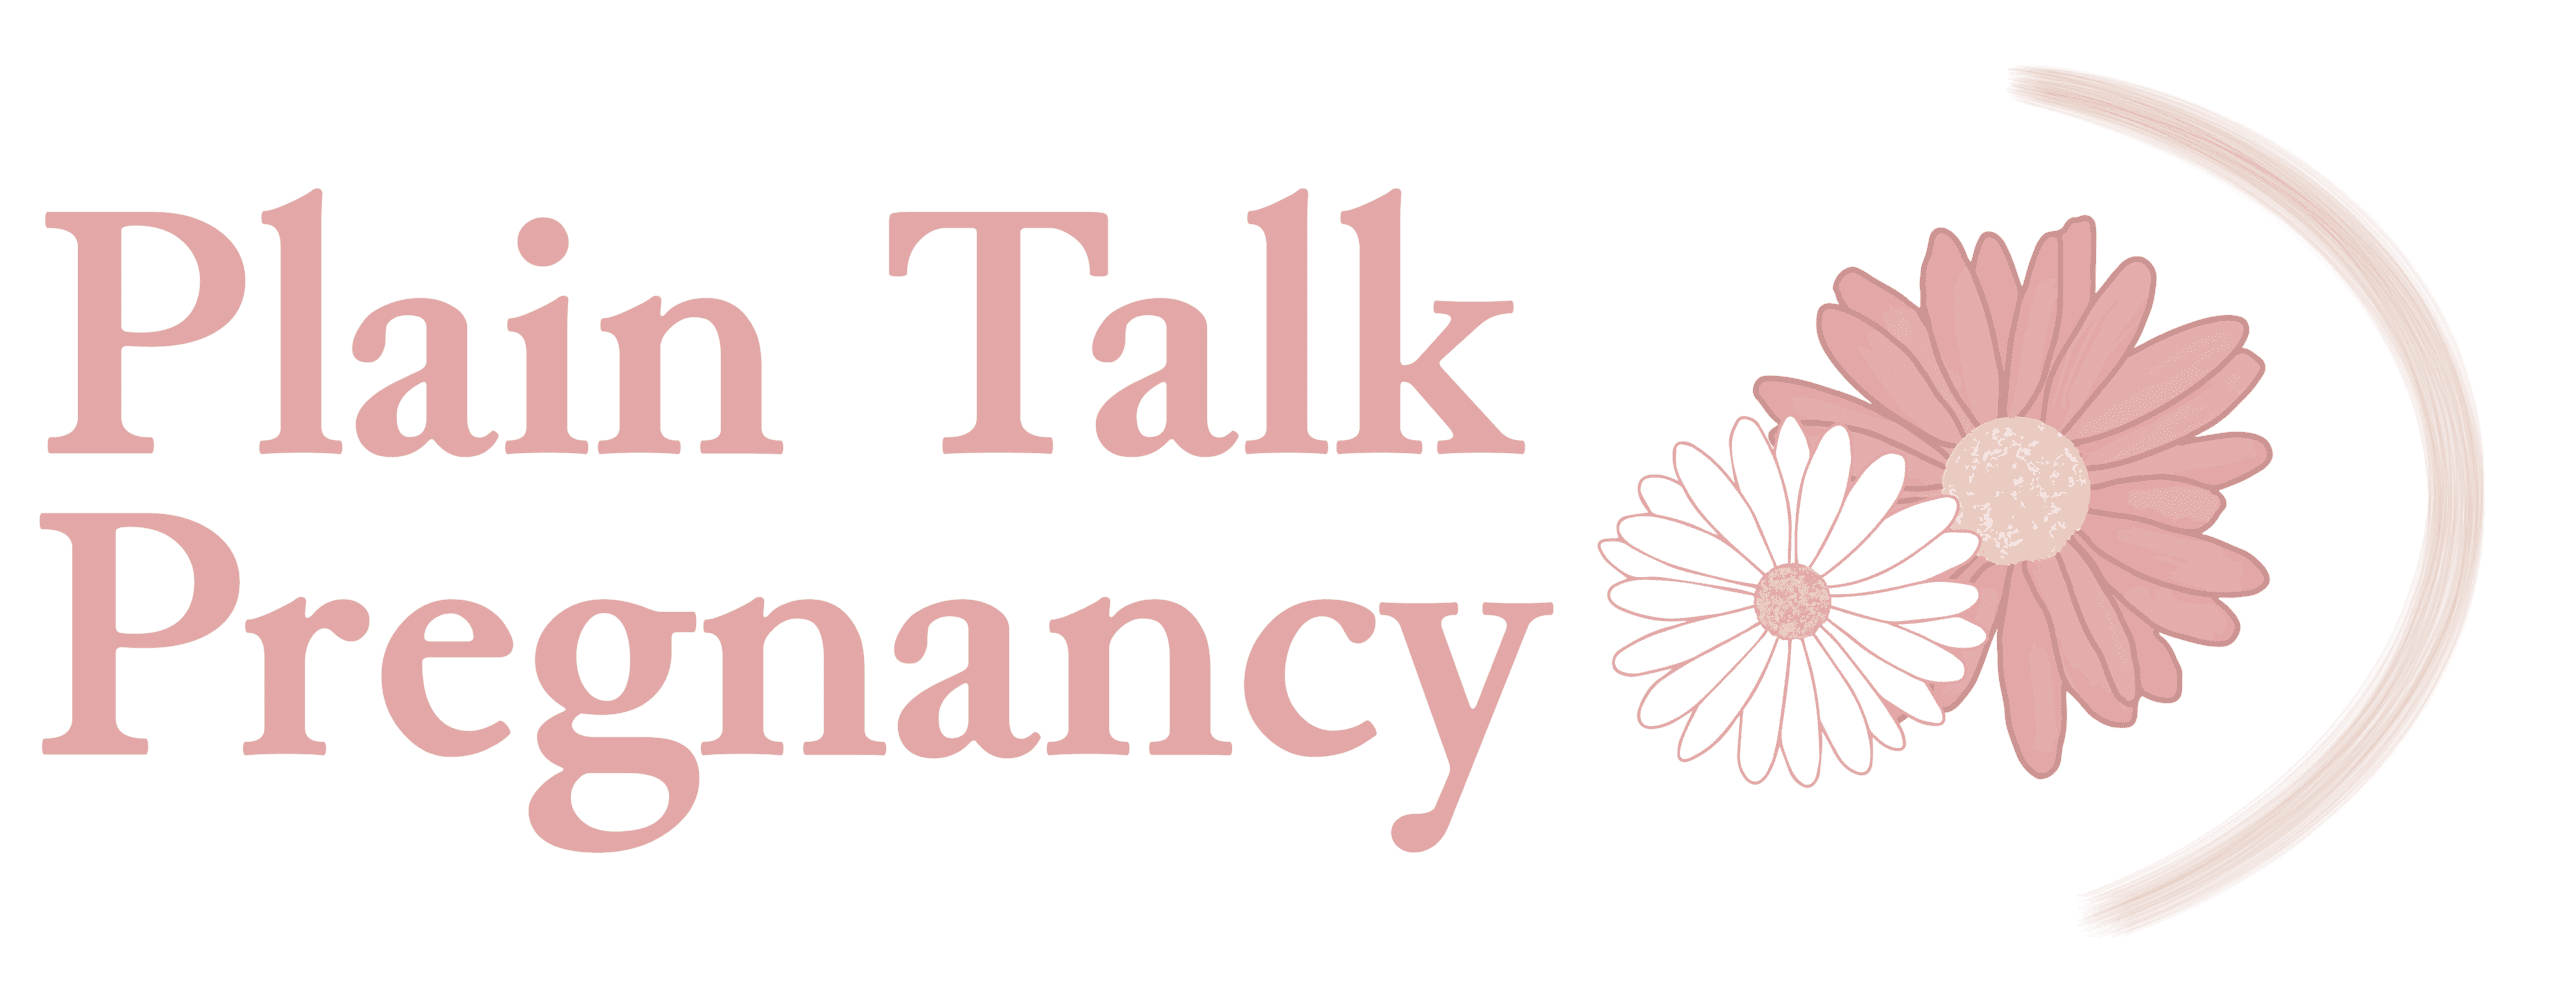 Plain Talk Pregnancy Logo in medium pink with two daisies